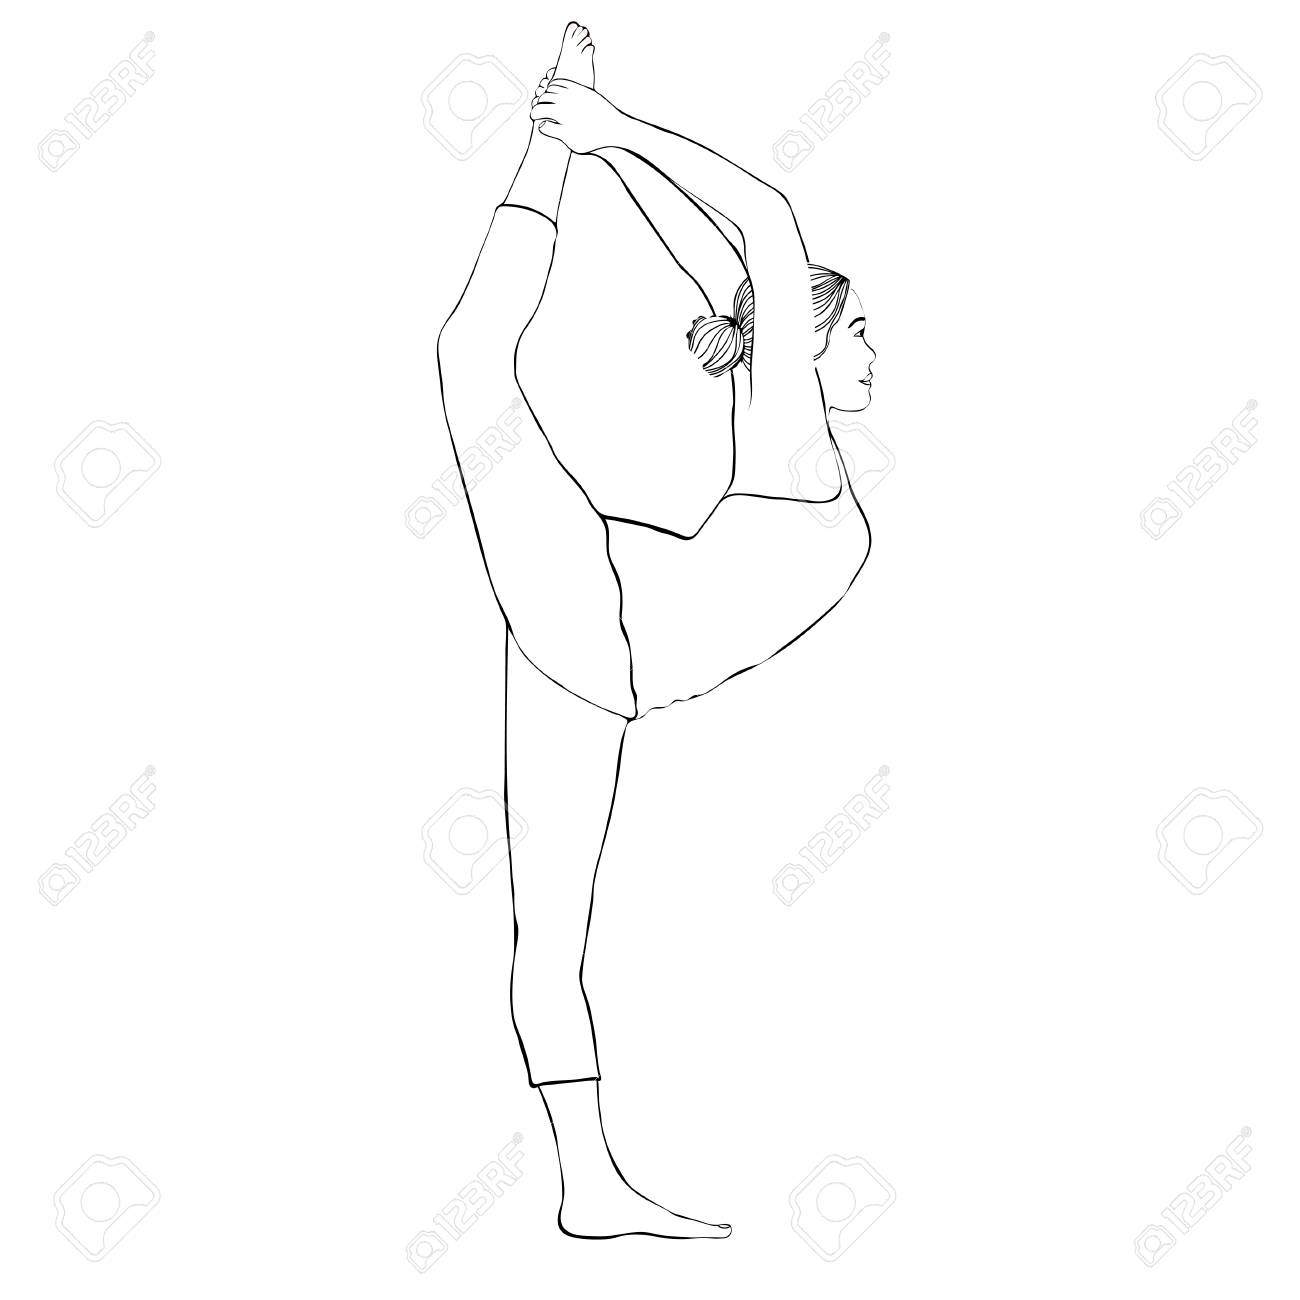 how to draw a girl doing the splits leg split stock images royalty free images vectors the draw how girl doing splits a to